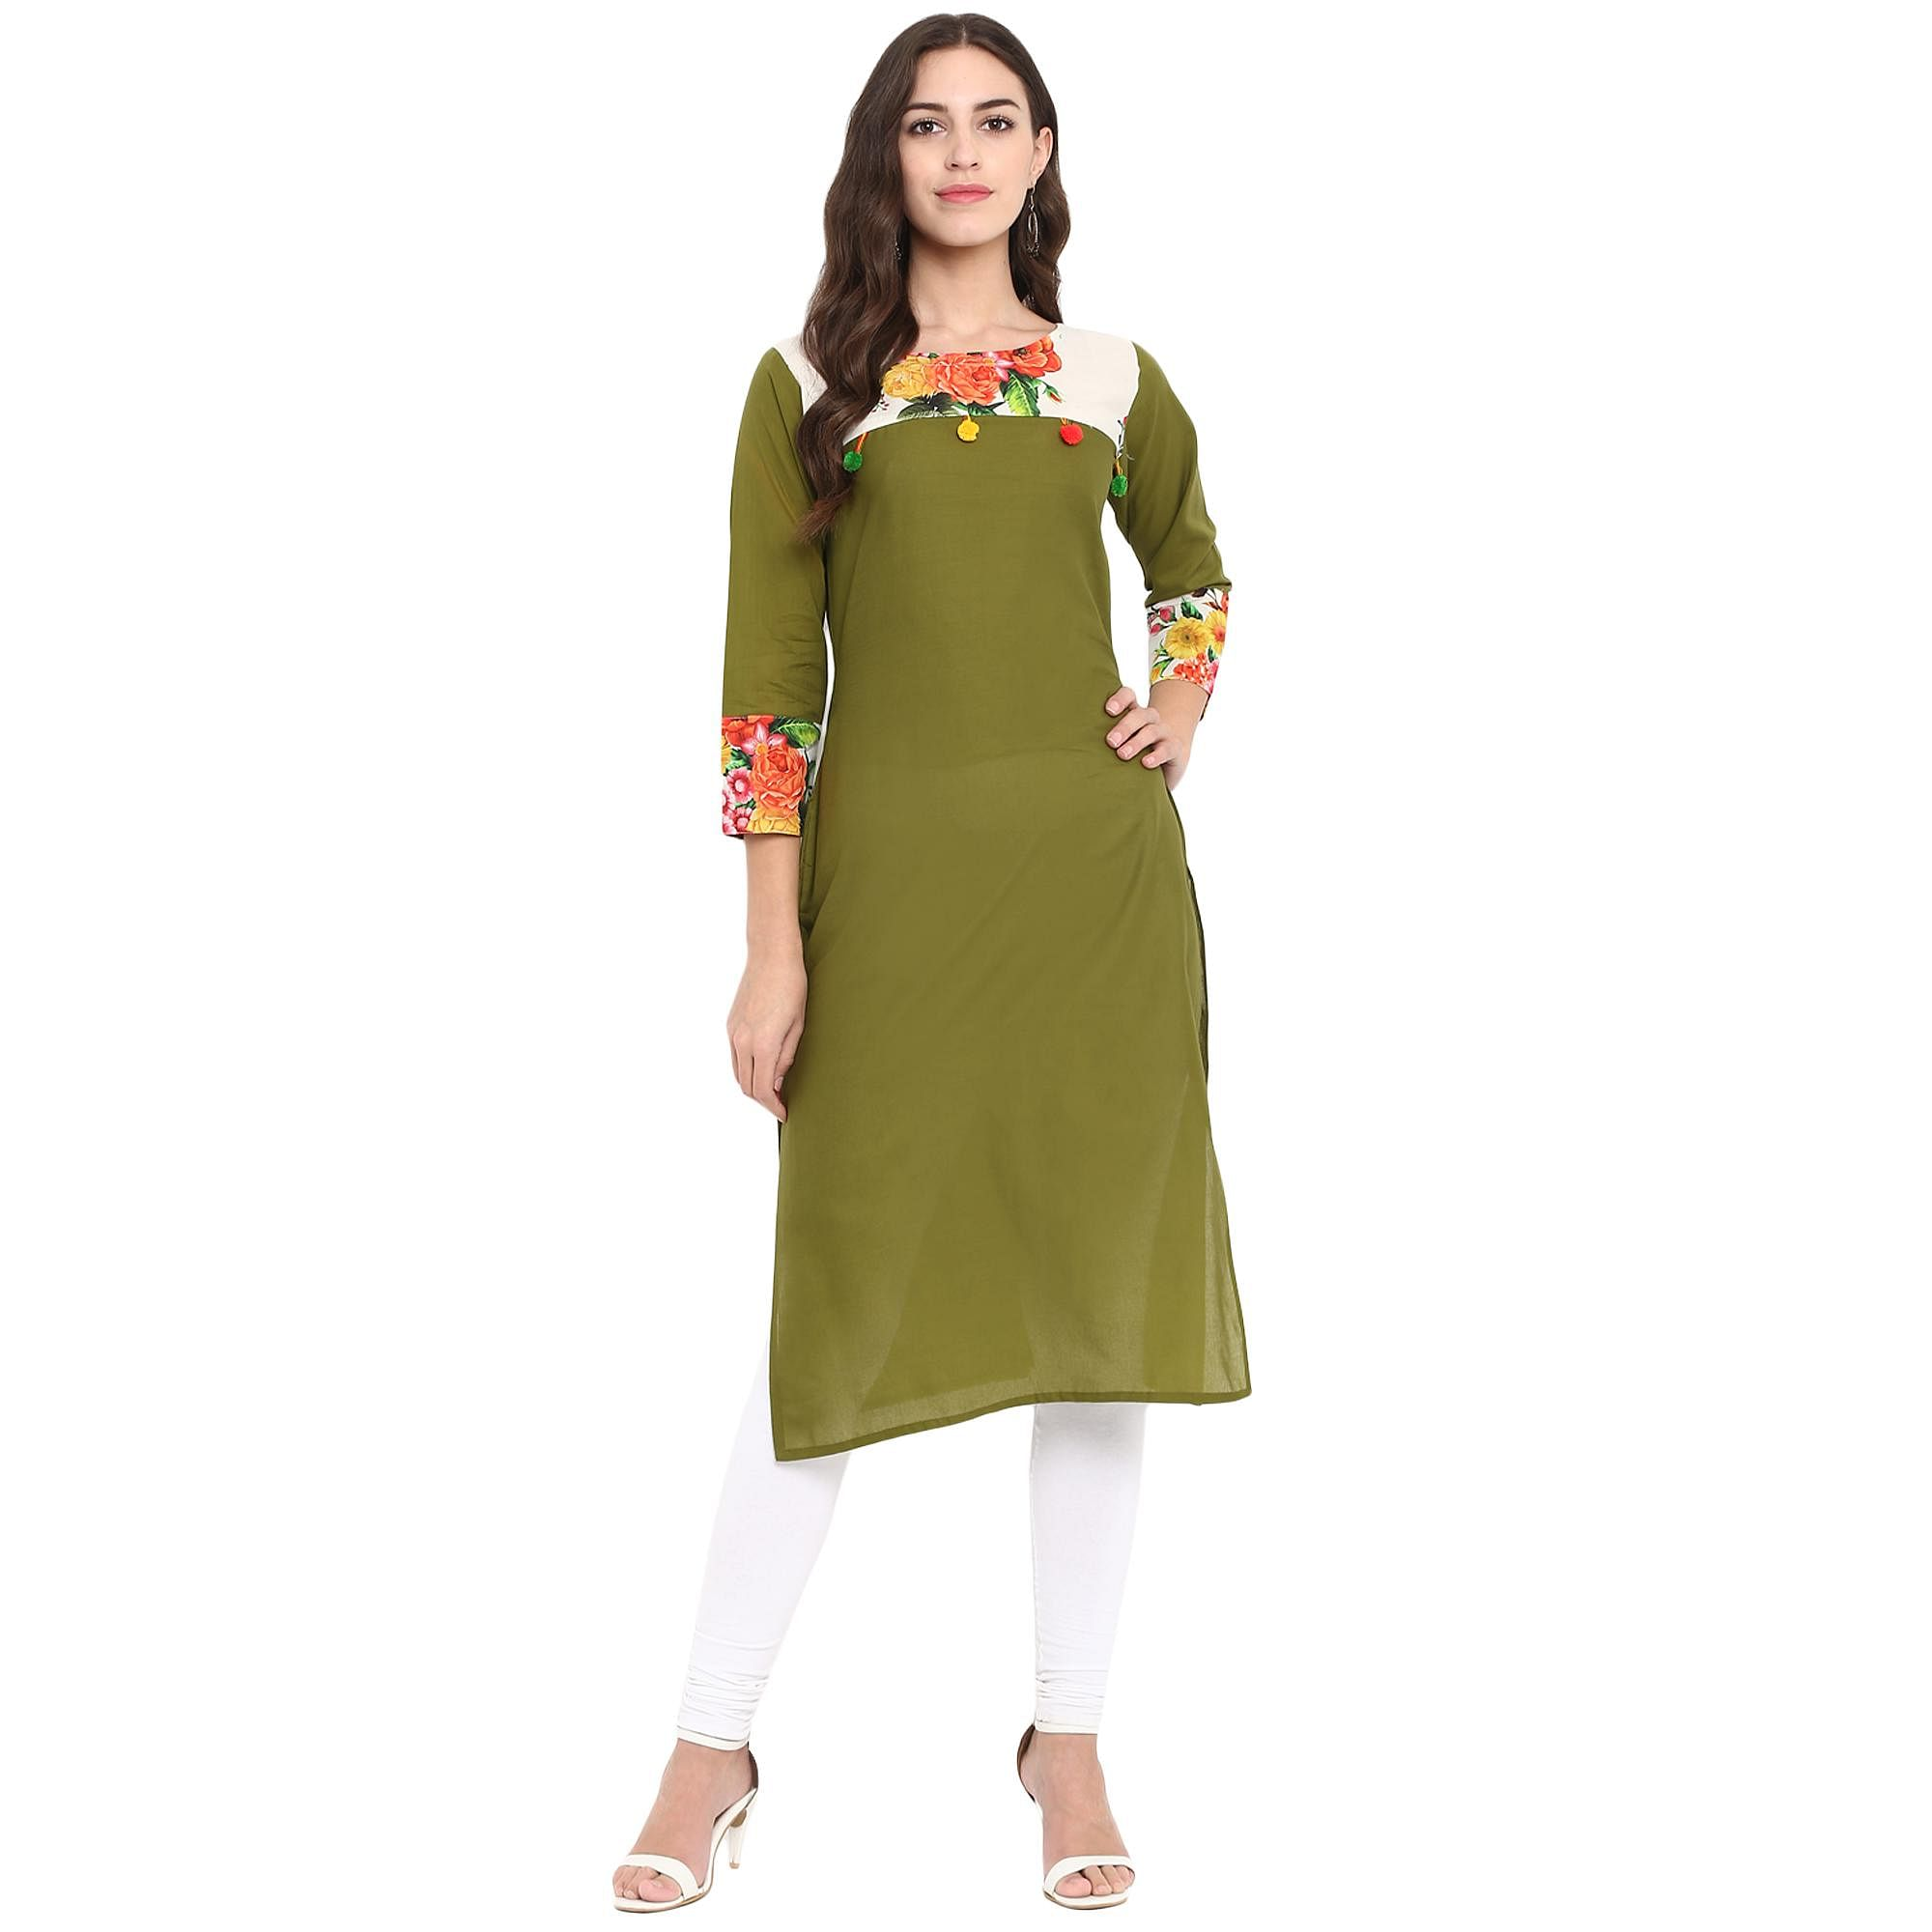 Ahalyaa - Green Colored Casual Digital Printed Cotton Kurti